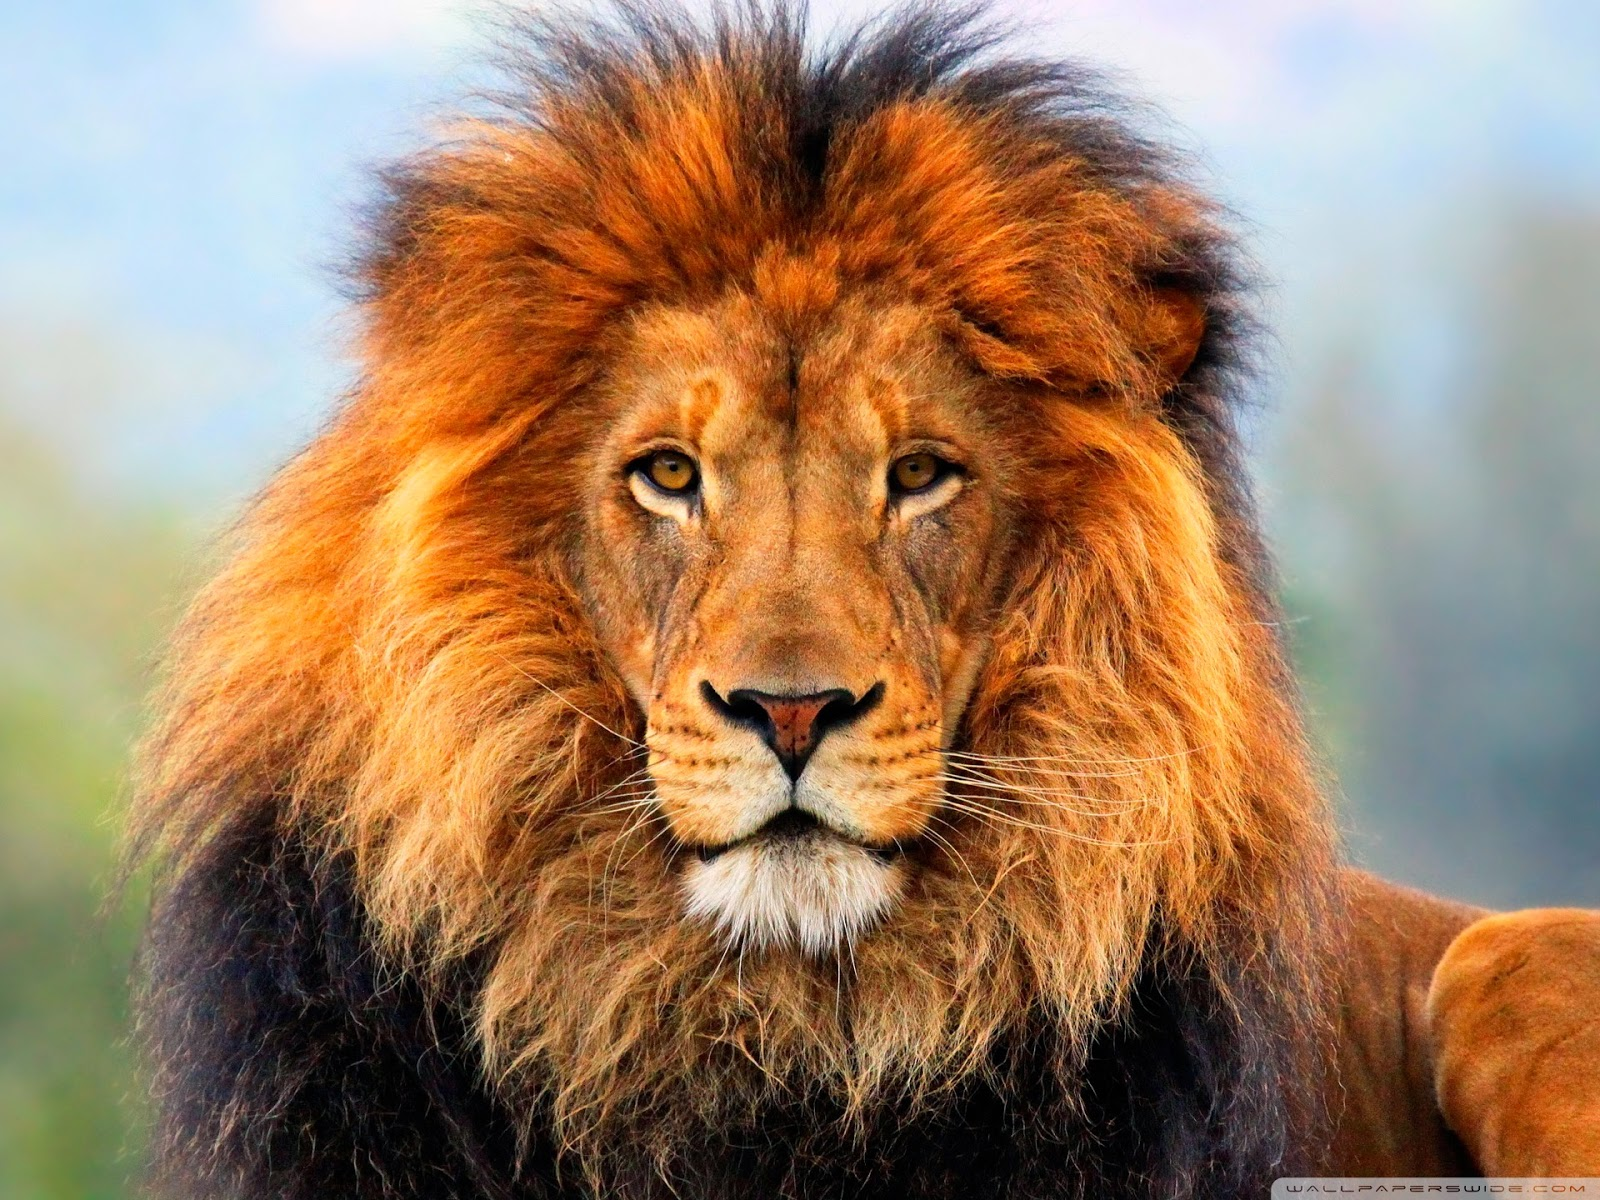 100 Lion Wallpapers For Your Desktop Most Beautiful Places In The World Download Free Wallpapers